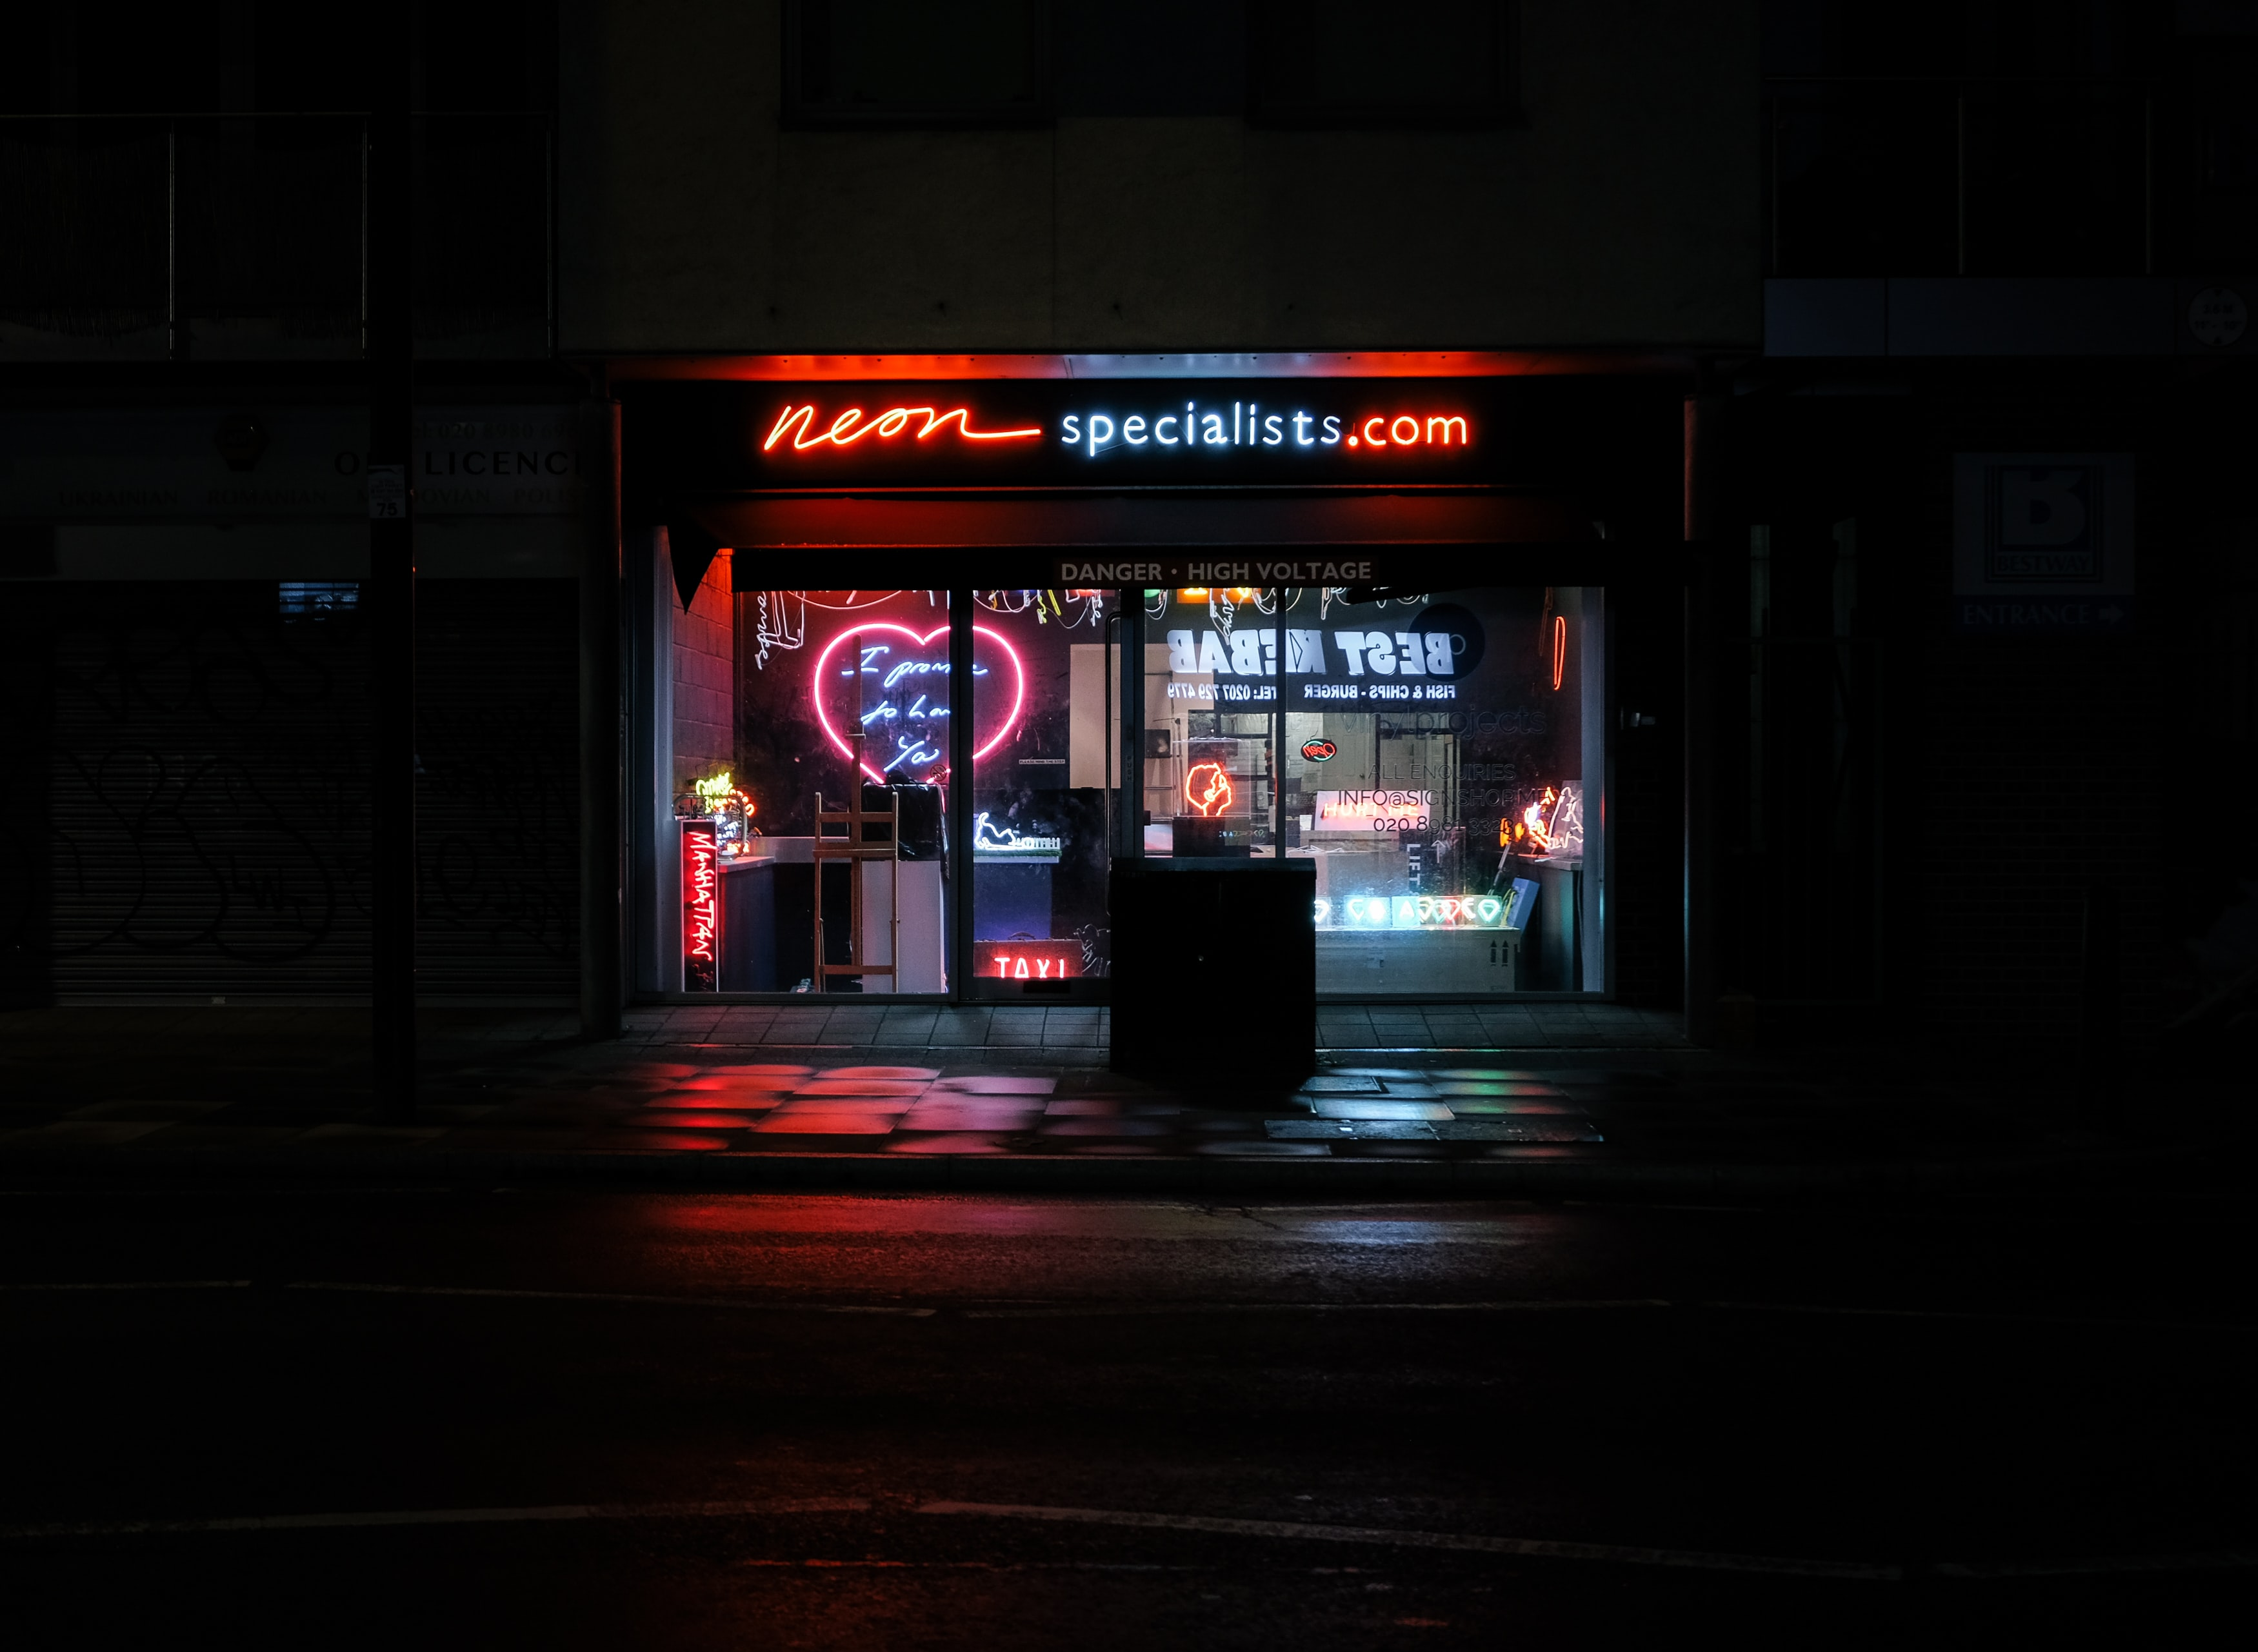 A storefront with a NeonSpecialists.com sign.